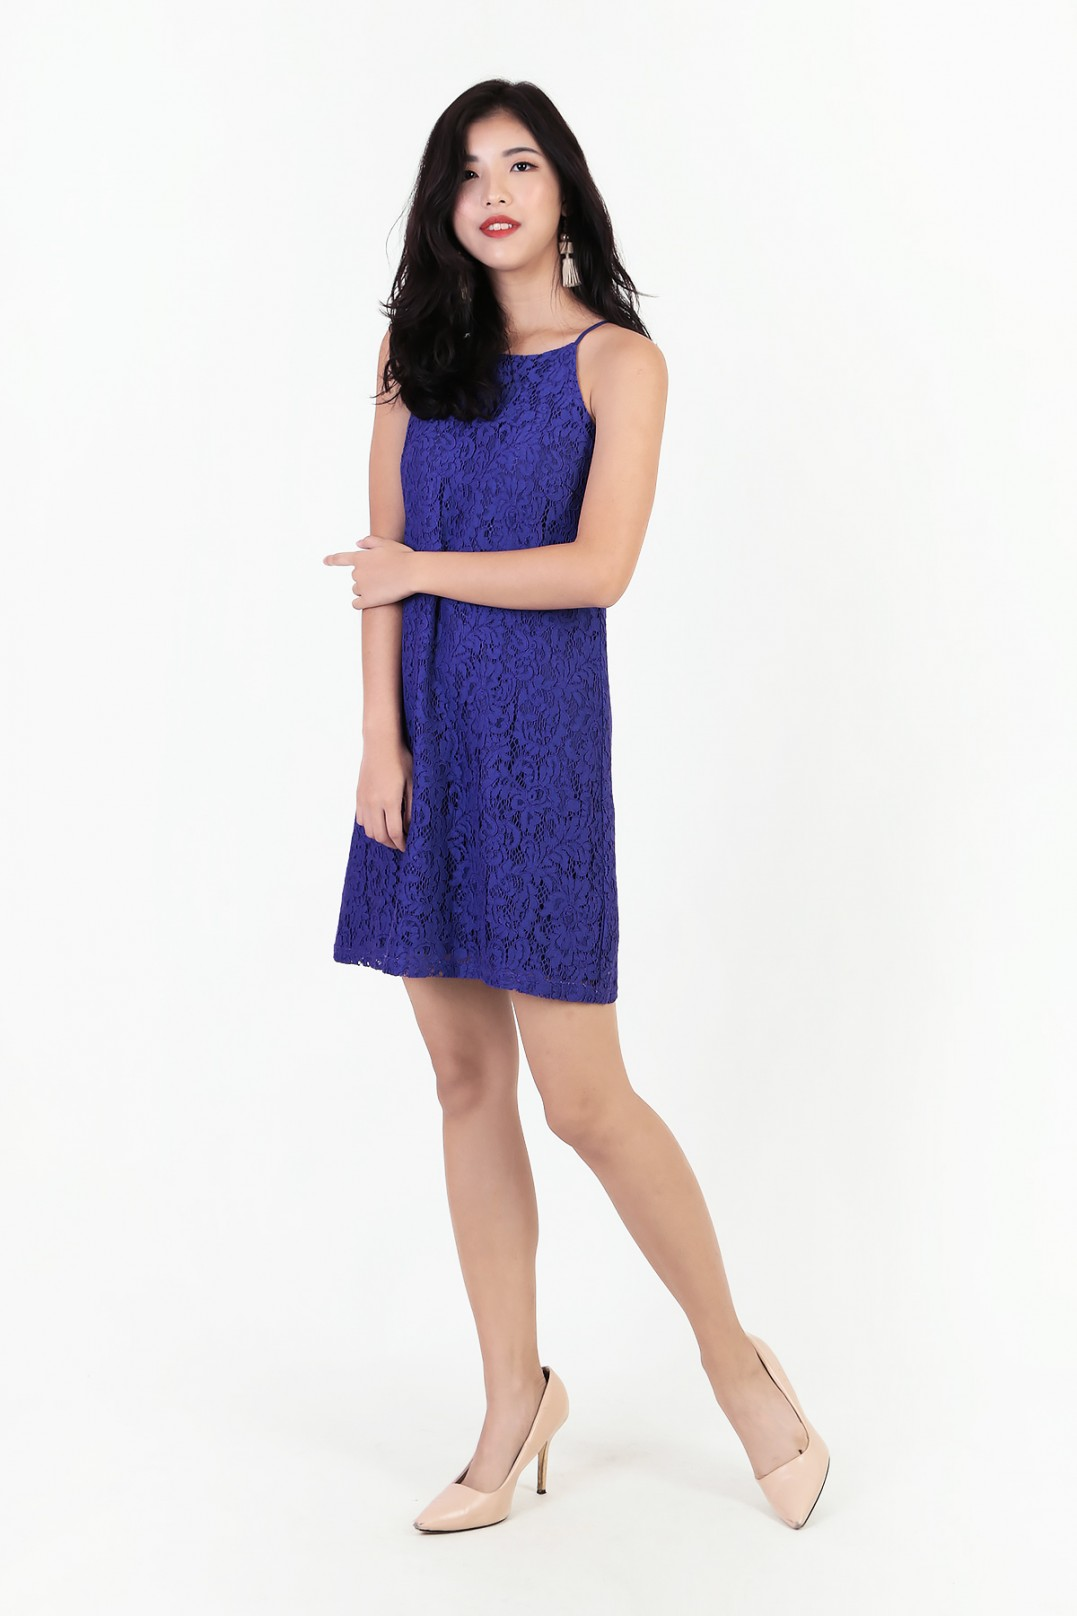 b6dce65898234 Joni Lace Swing Dress in Royal Purple - MGP